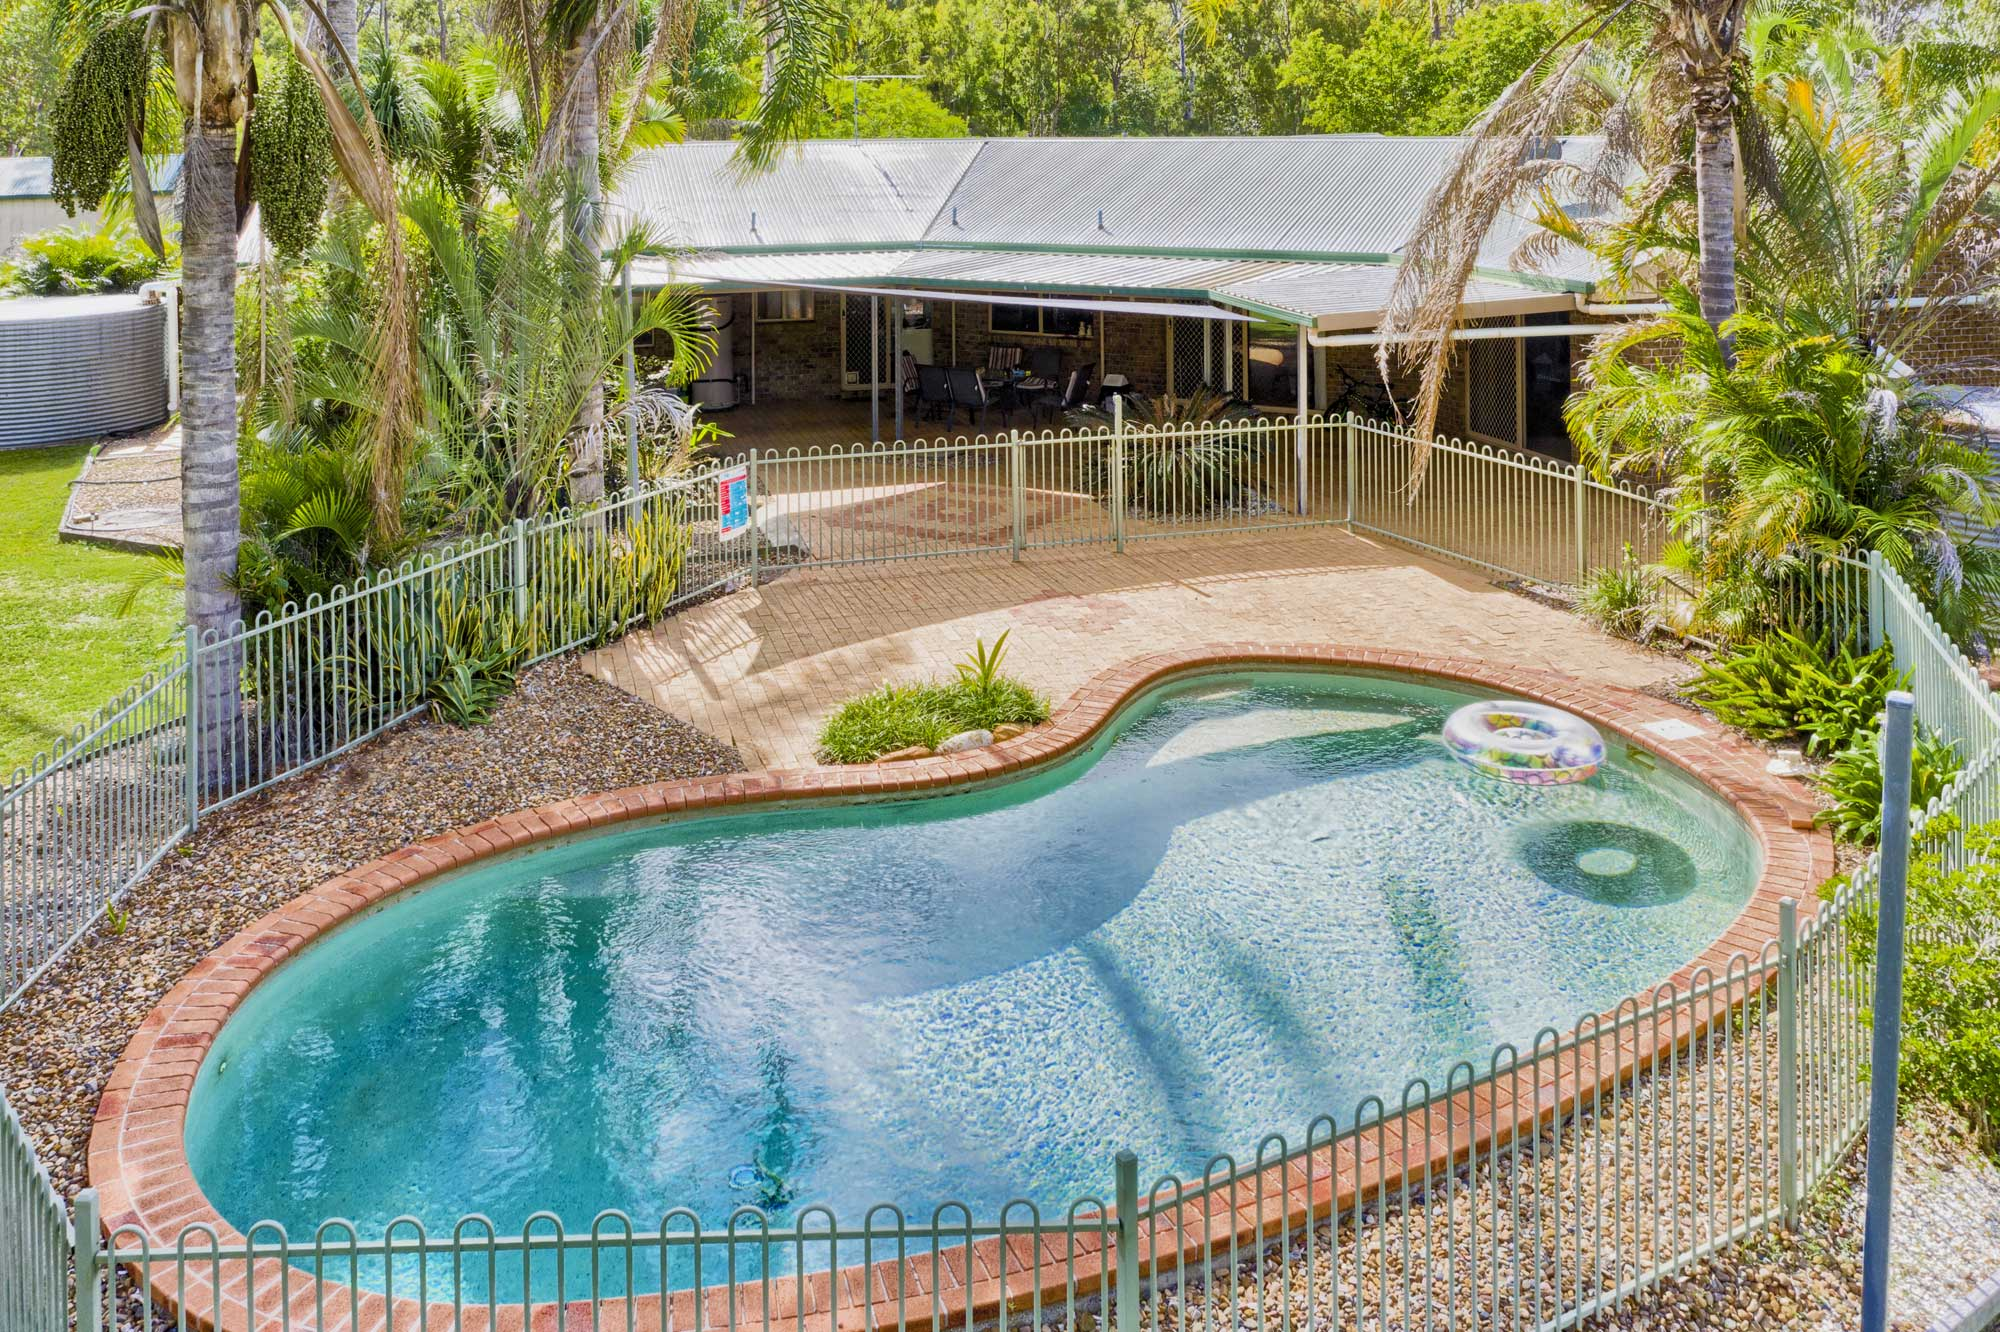 Drone photography of the pool at 1033 Teviot Rd Jimboomba